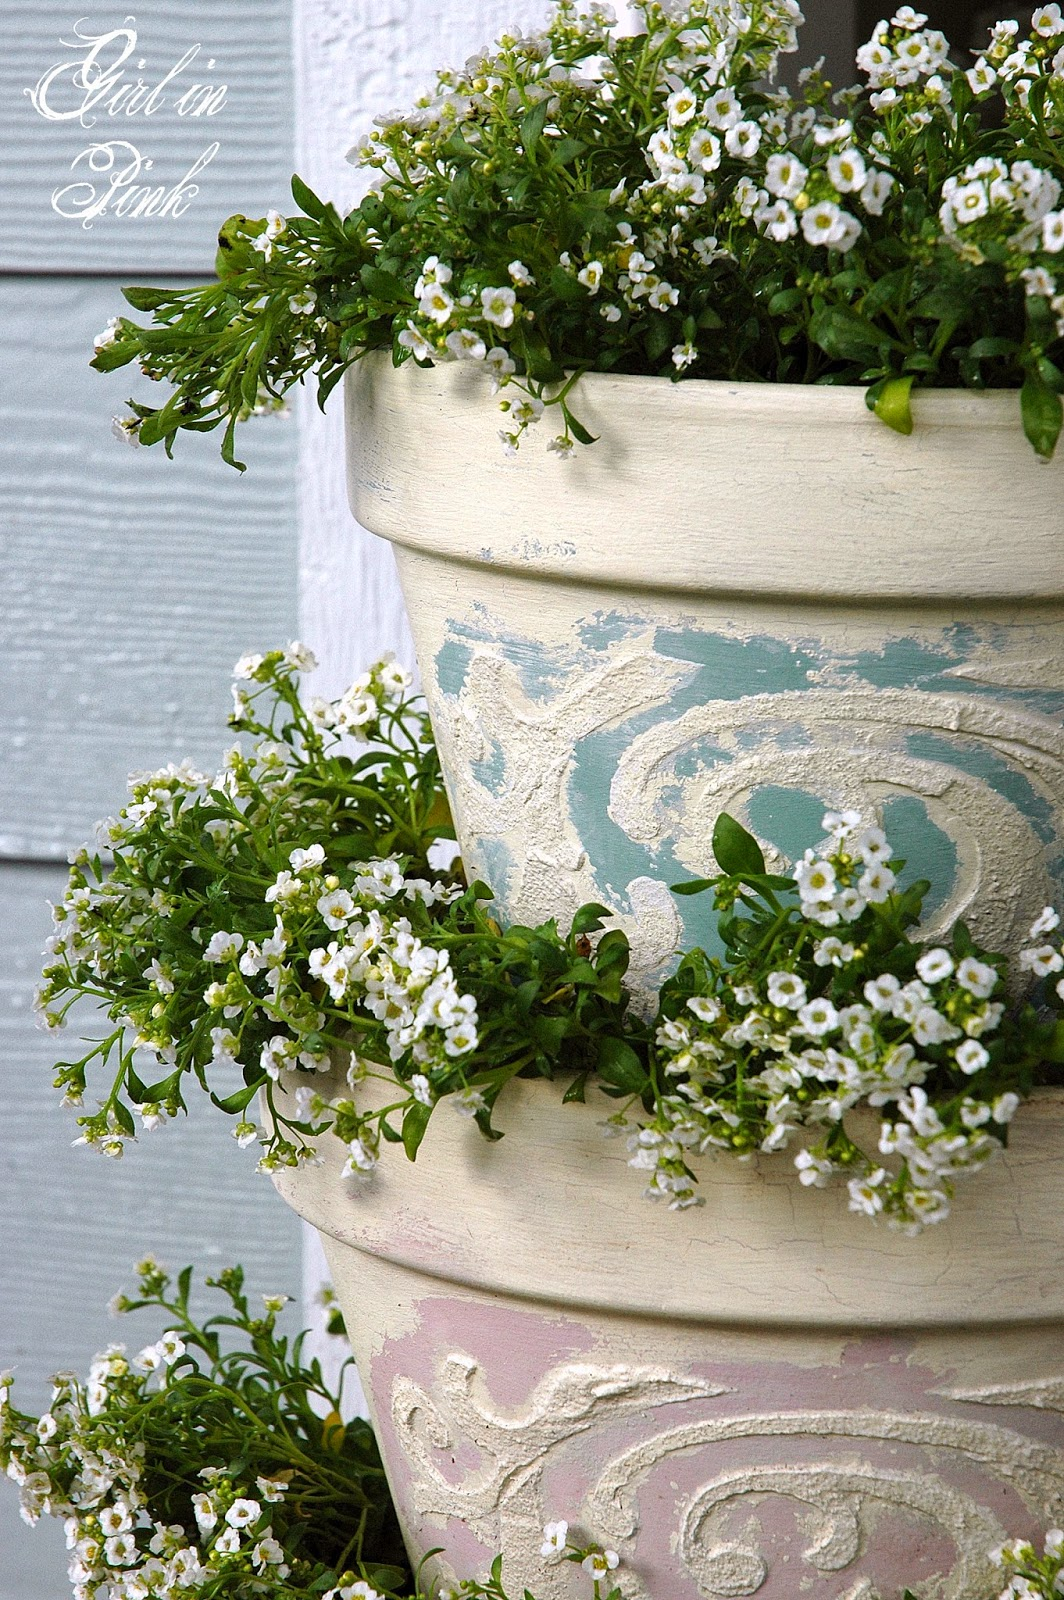 Girl In Pink How To Create Beautiful Finishes On Flower Pots And